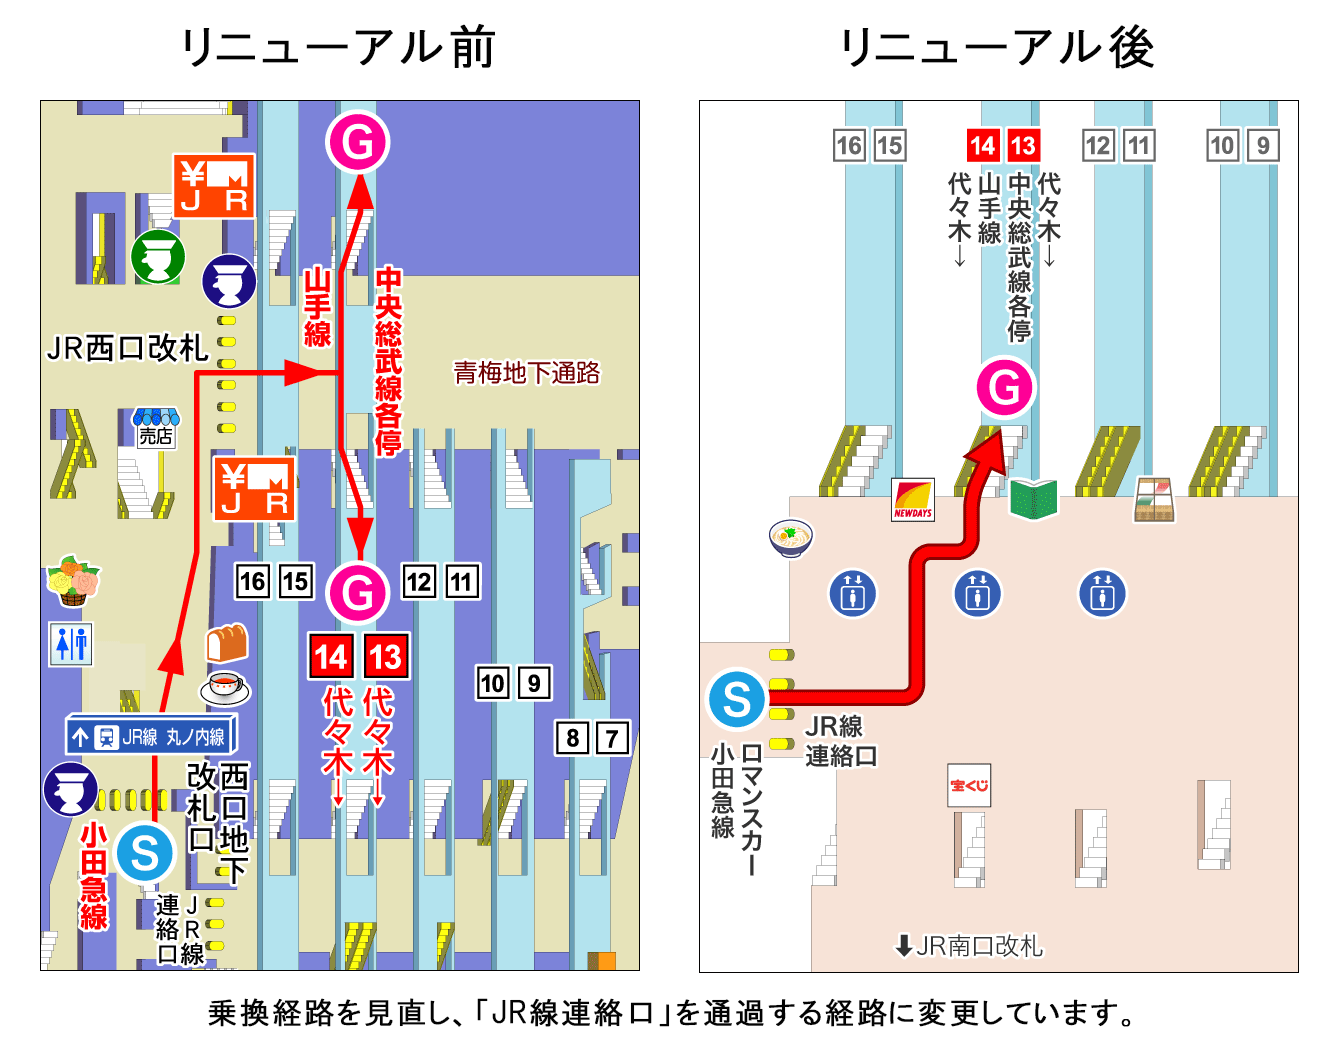 http://corporate.navitime.co.jp/topics/27bc5508dcf505c35b11fa0f9c207061ce2b7bf7.png